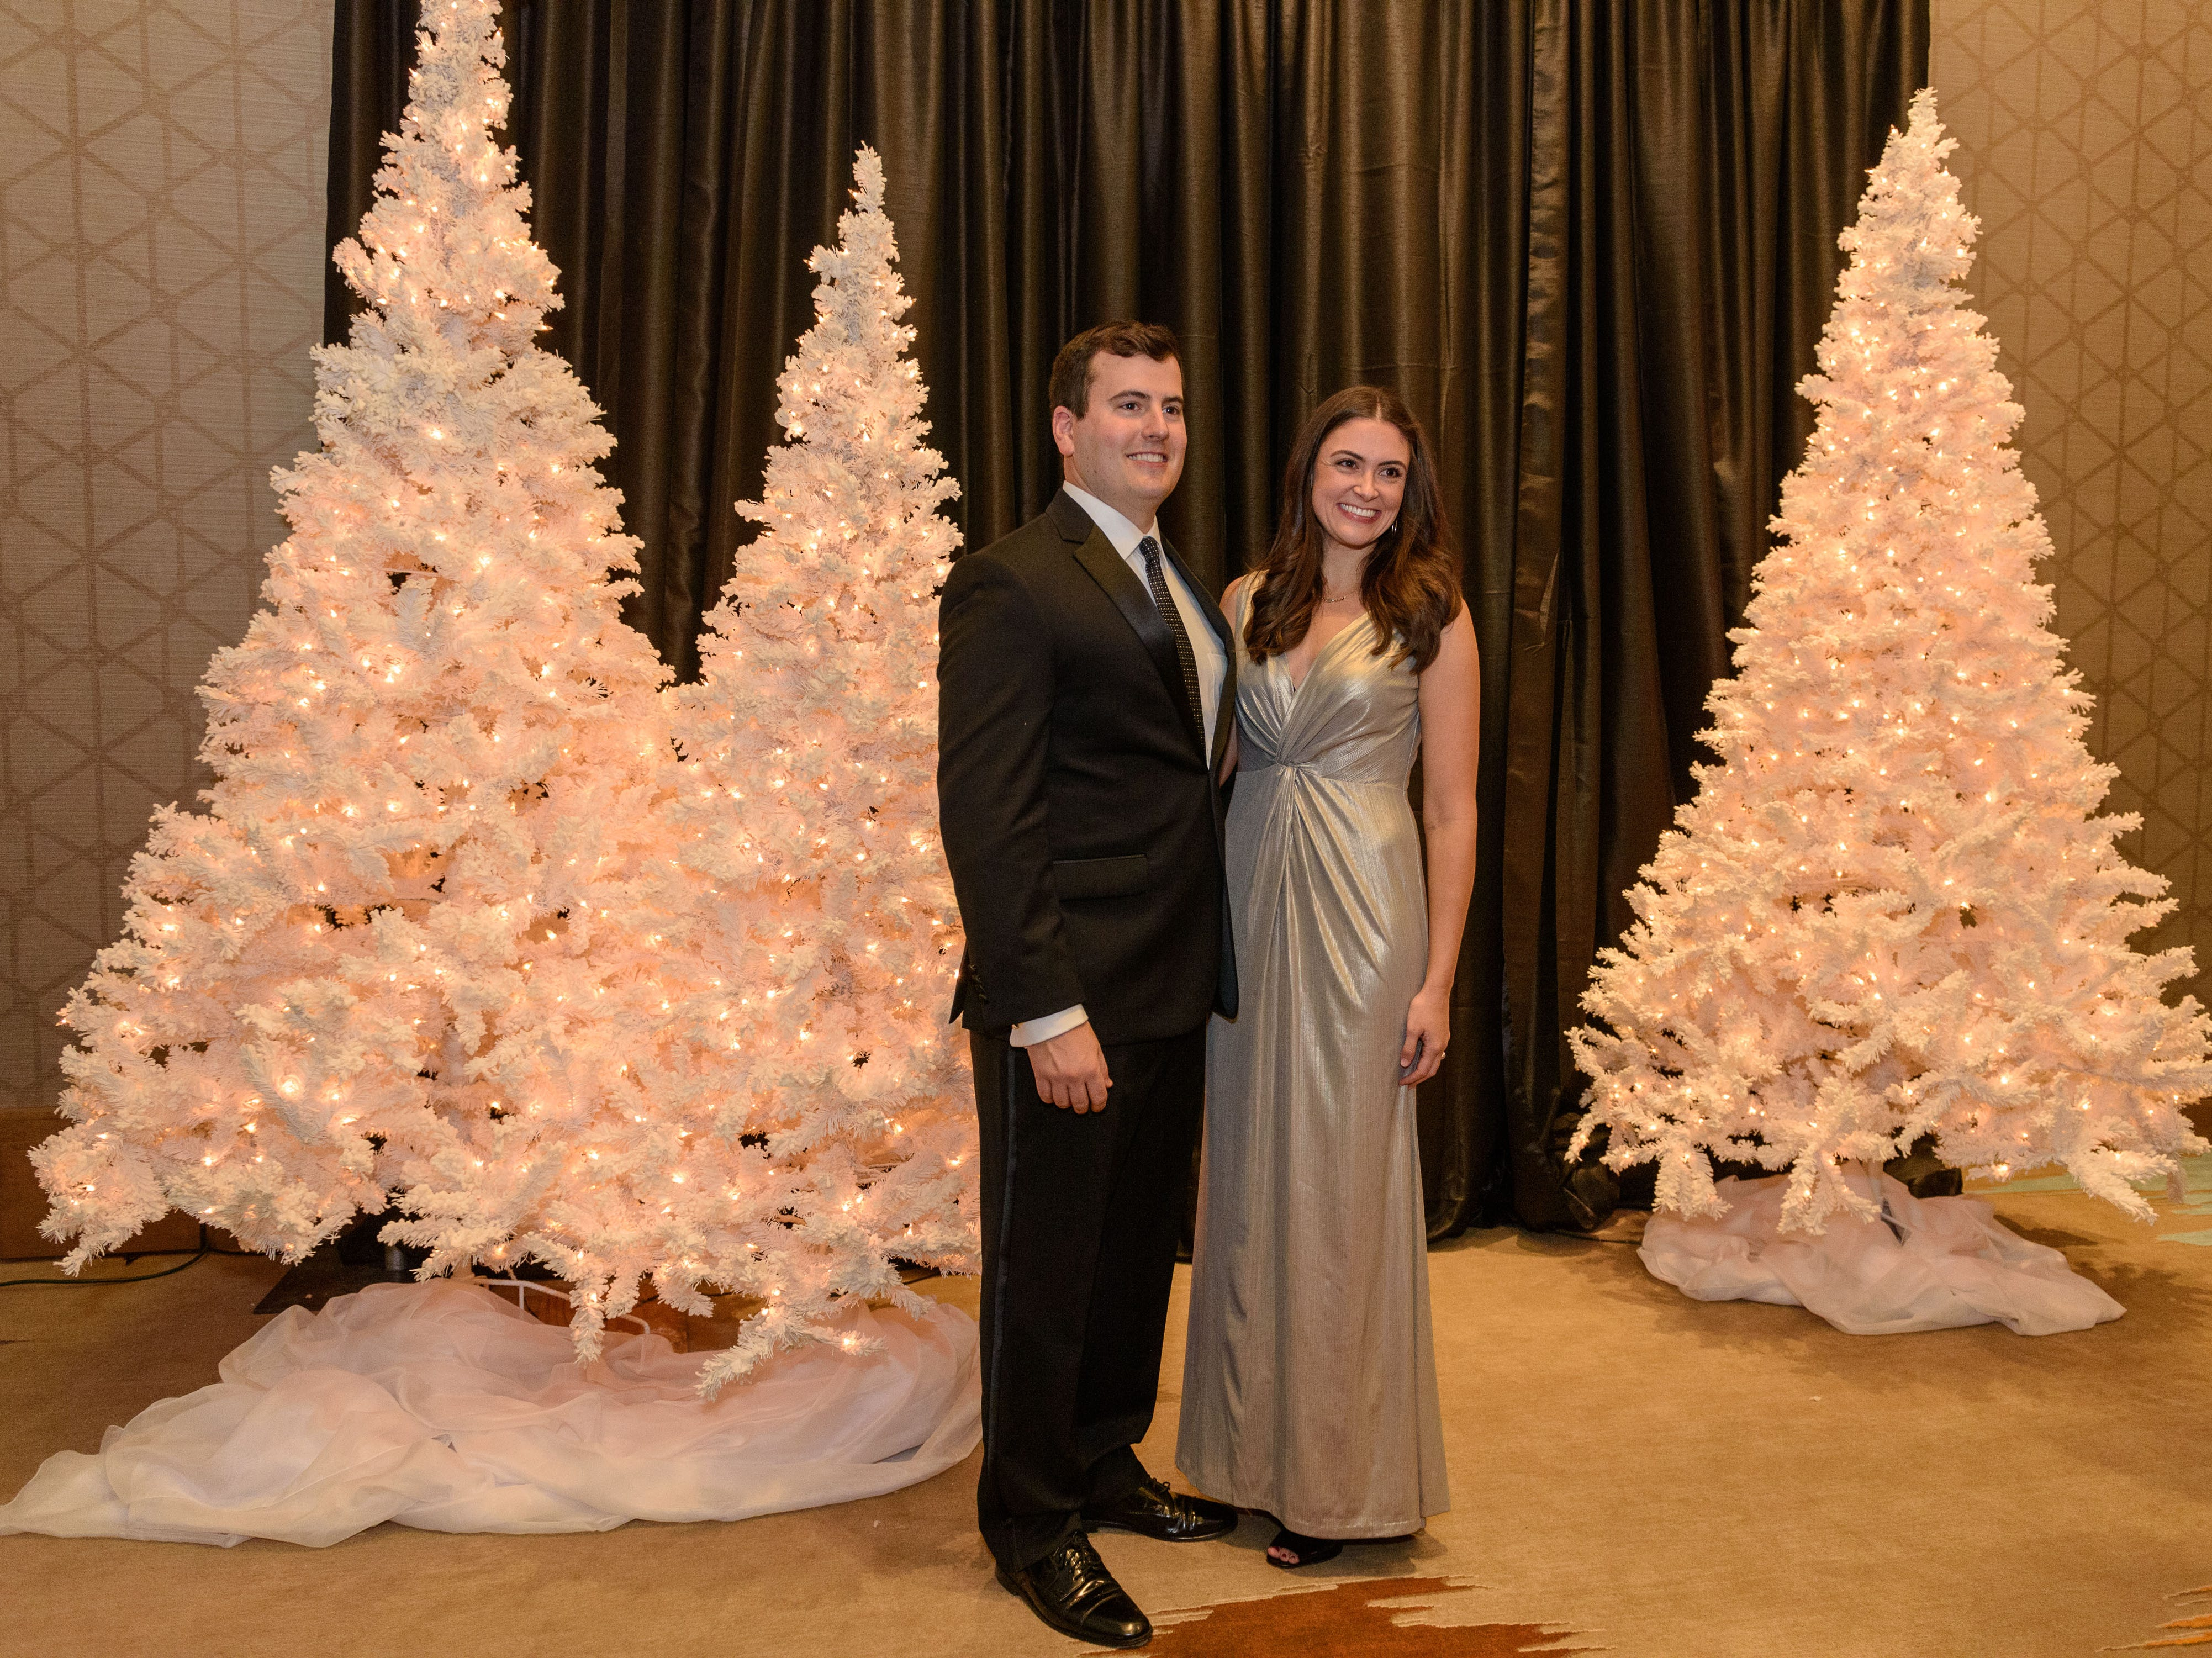 Sarah and Michael Anderson pose for a complimentary photo at the Snow Ball Gala at the Omni Hotel, a benefit for the Jennifer Lawrence Cardiac Intensive Care Unit (CICU) at Norton ChildrenÕs Hospital. Nov. 17, 2018